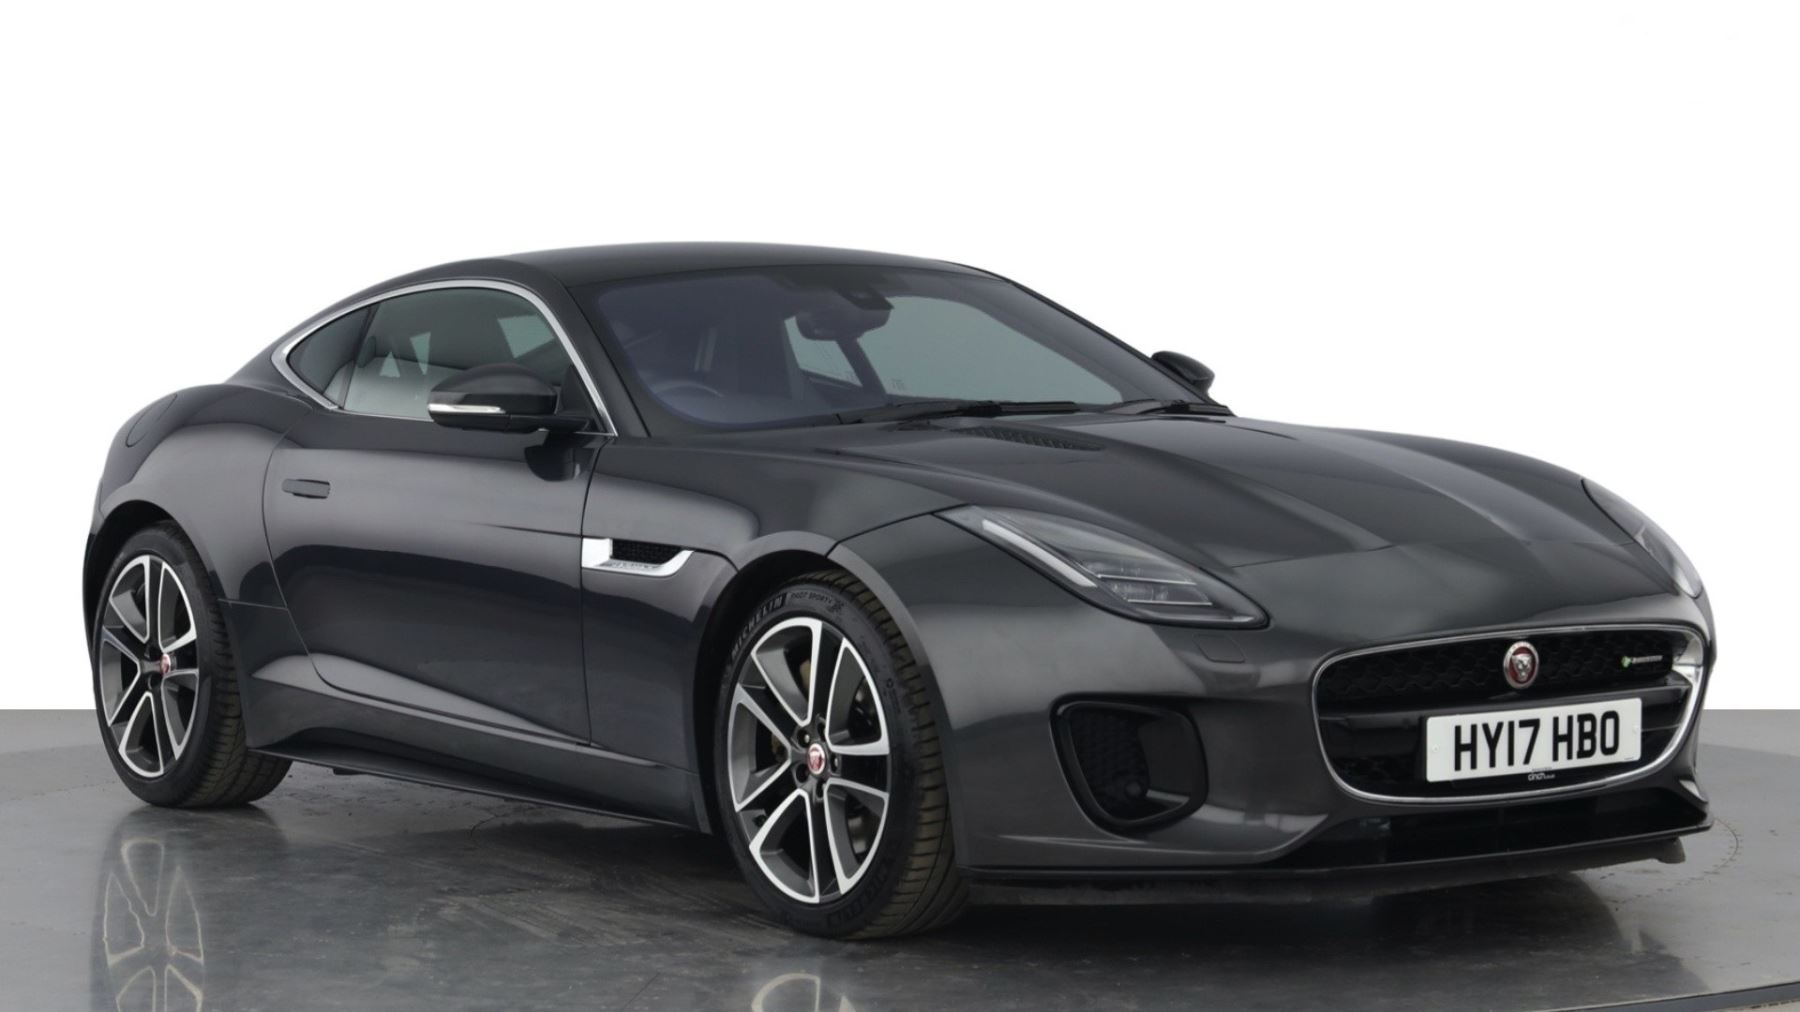 Jaguar F-TYPE 3.0 Supercharged V6 R-Dynamic with Panoramic Sunroof and Meridian Surround Sound Automatic 2 door Coupe